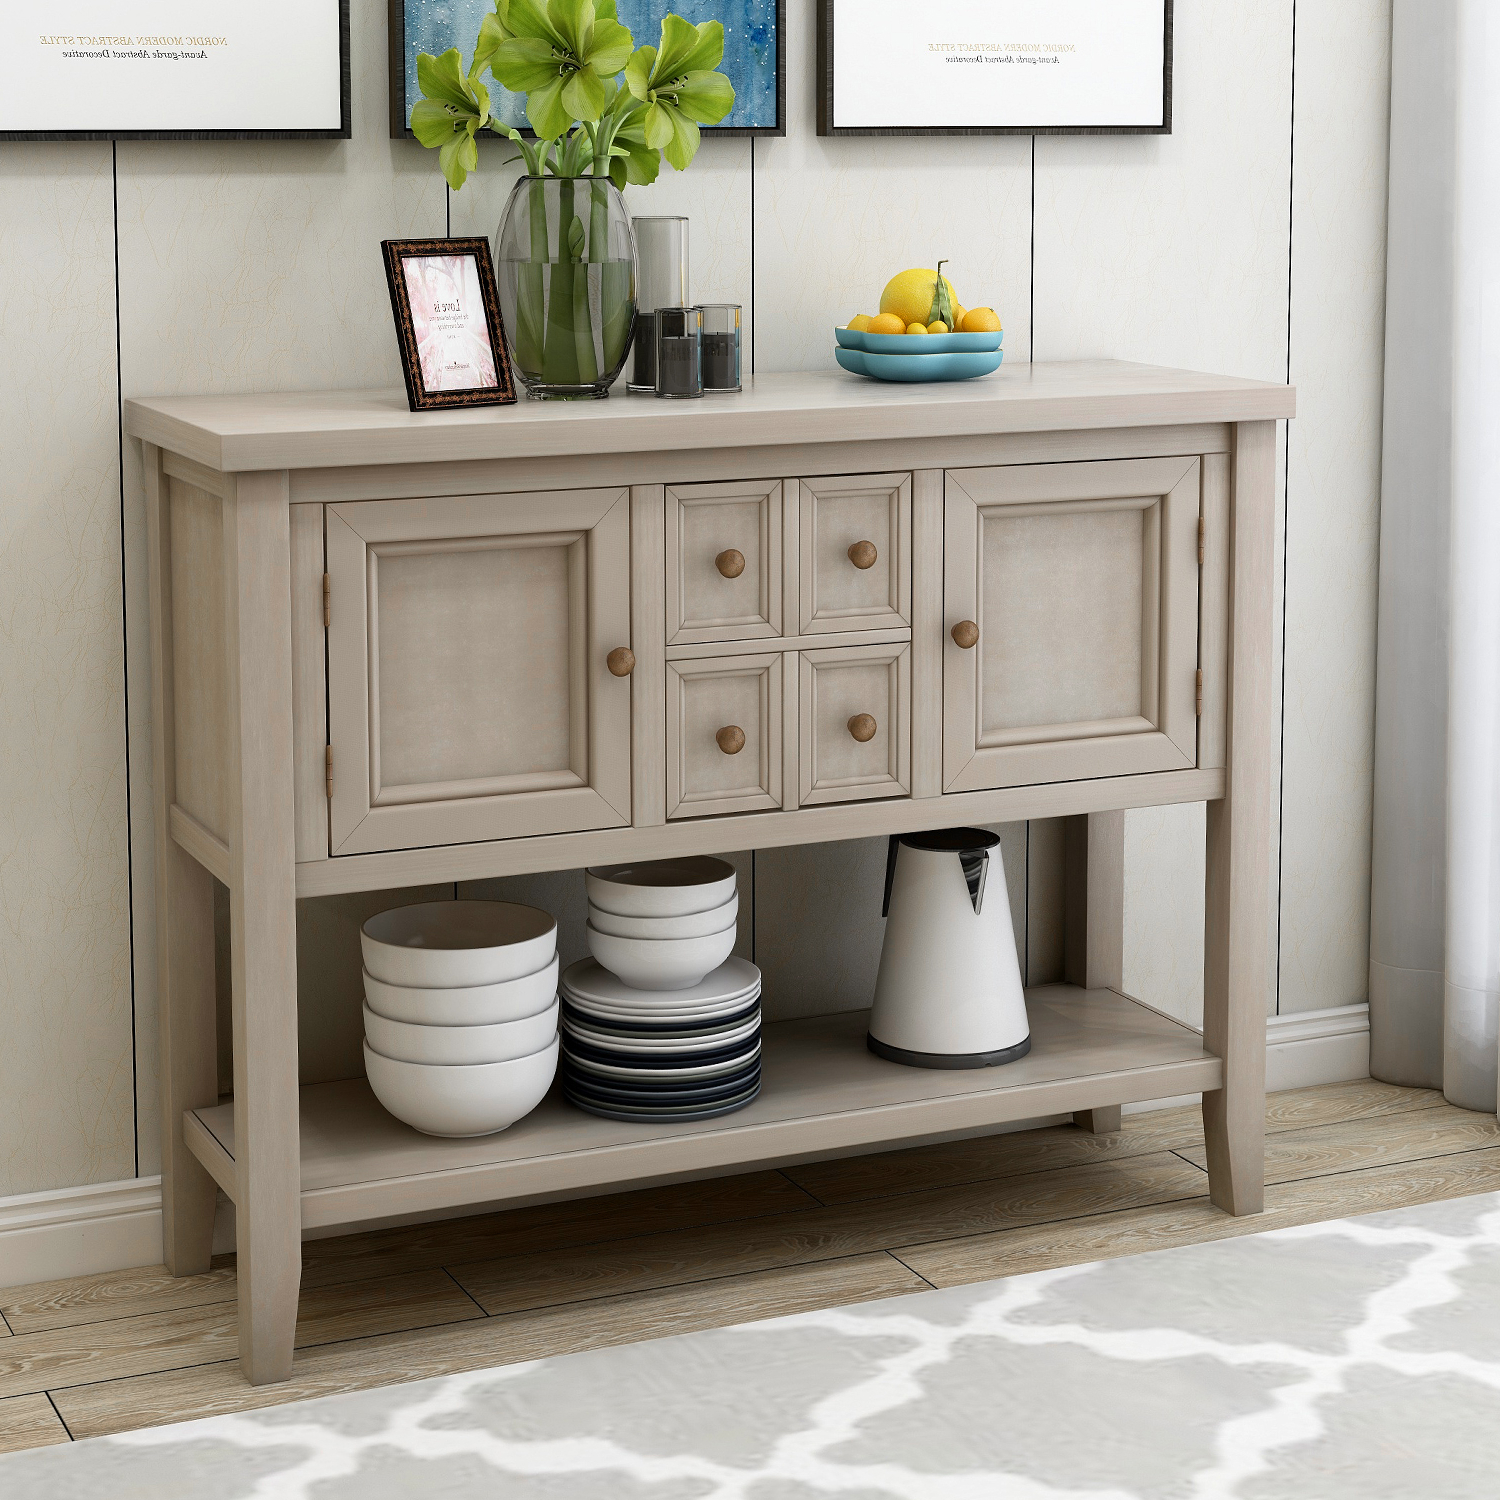 46'' X 15'' X 34'' Wood Console Table With 4 Storage With Regard To Most Current Chouchanik 46 Wide 4 Drawer Sideboards (View 11 of 20)